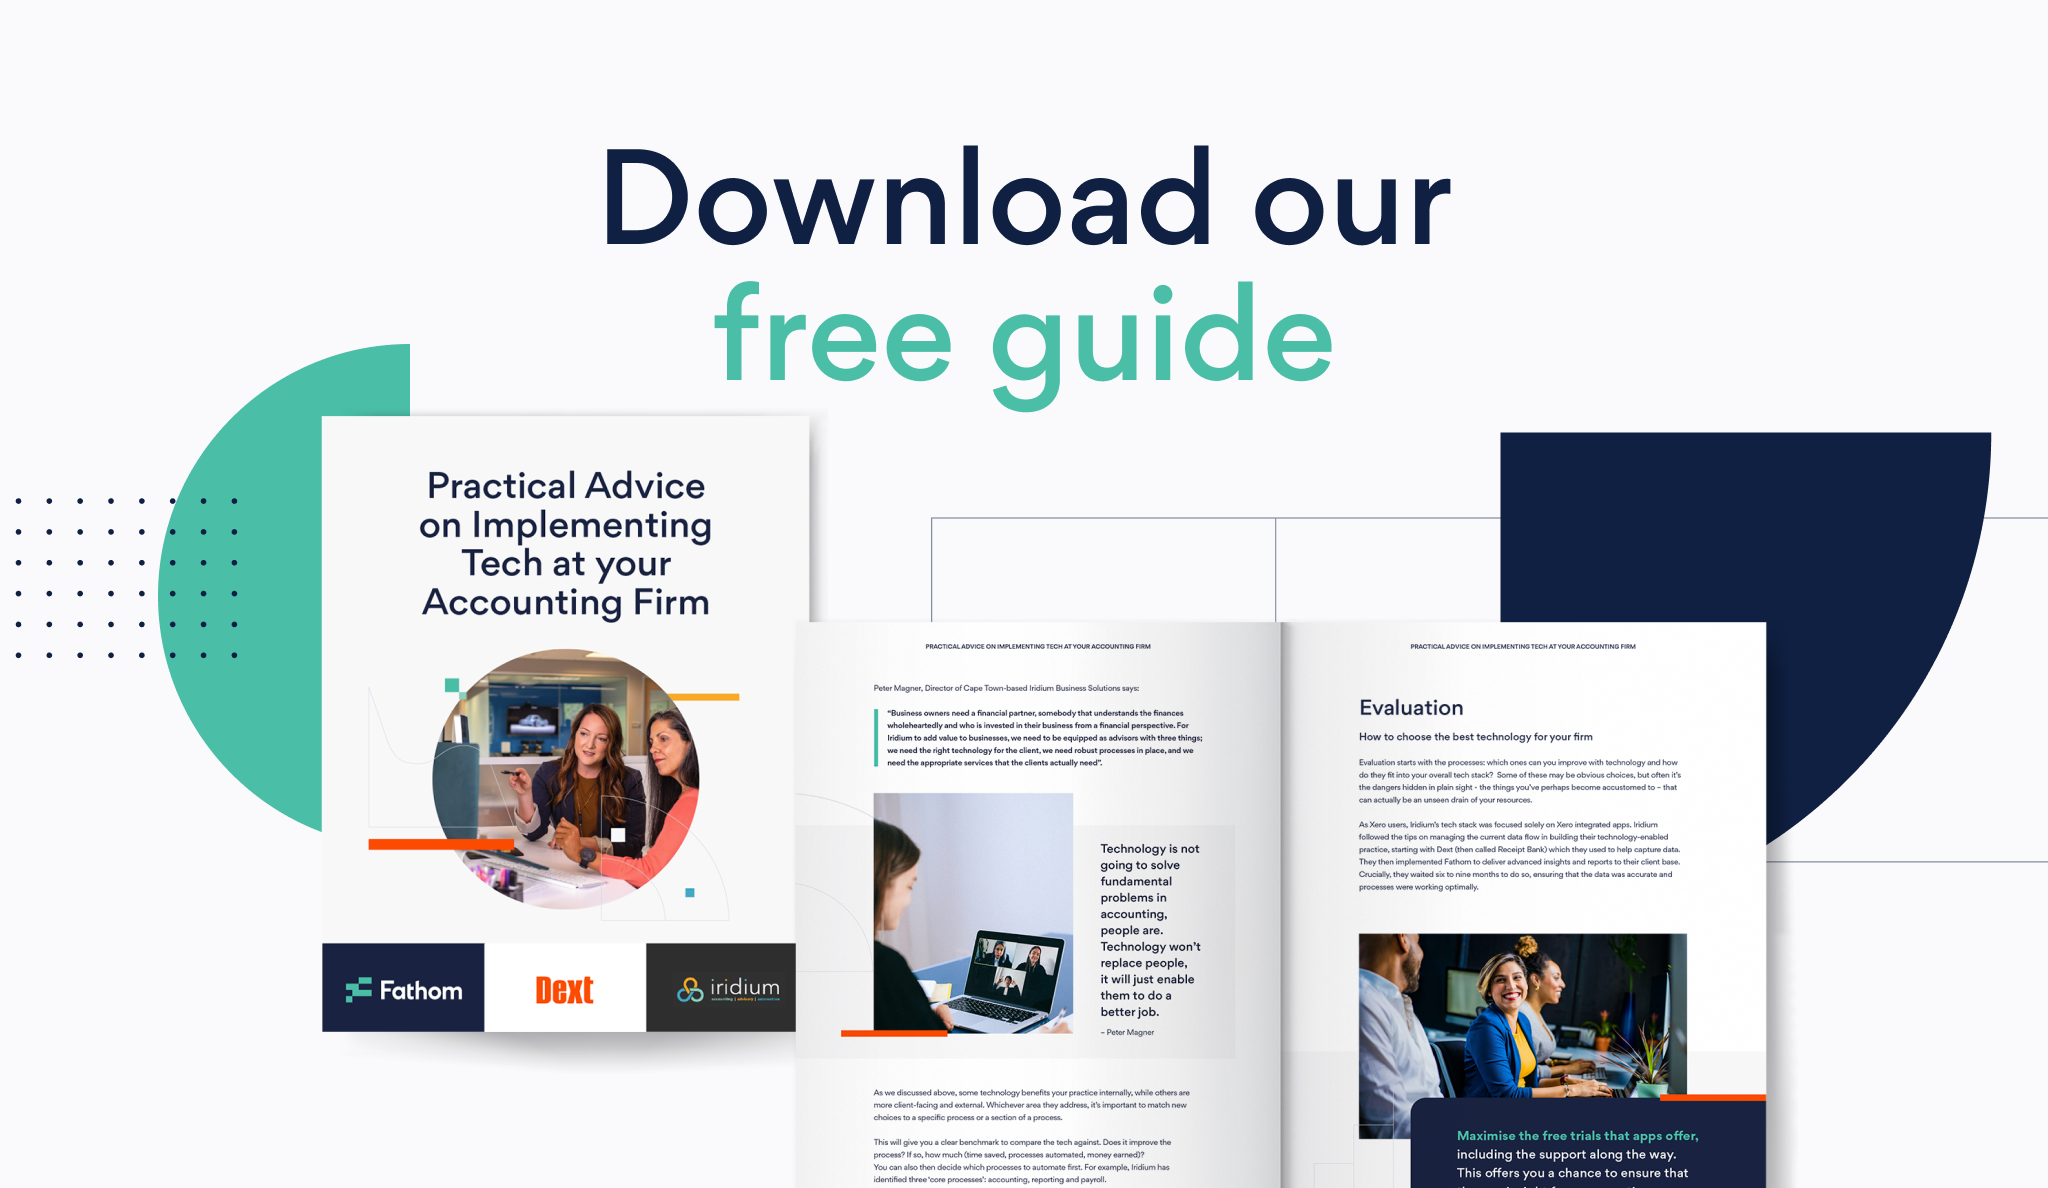 Guide: practical advice on implementing tech at your accounting firm